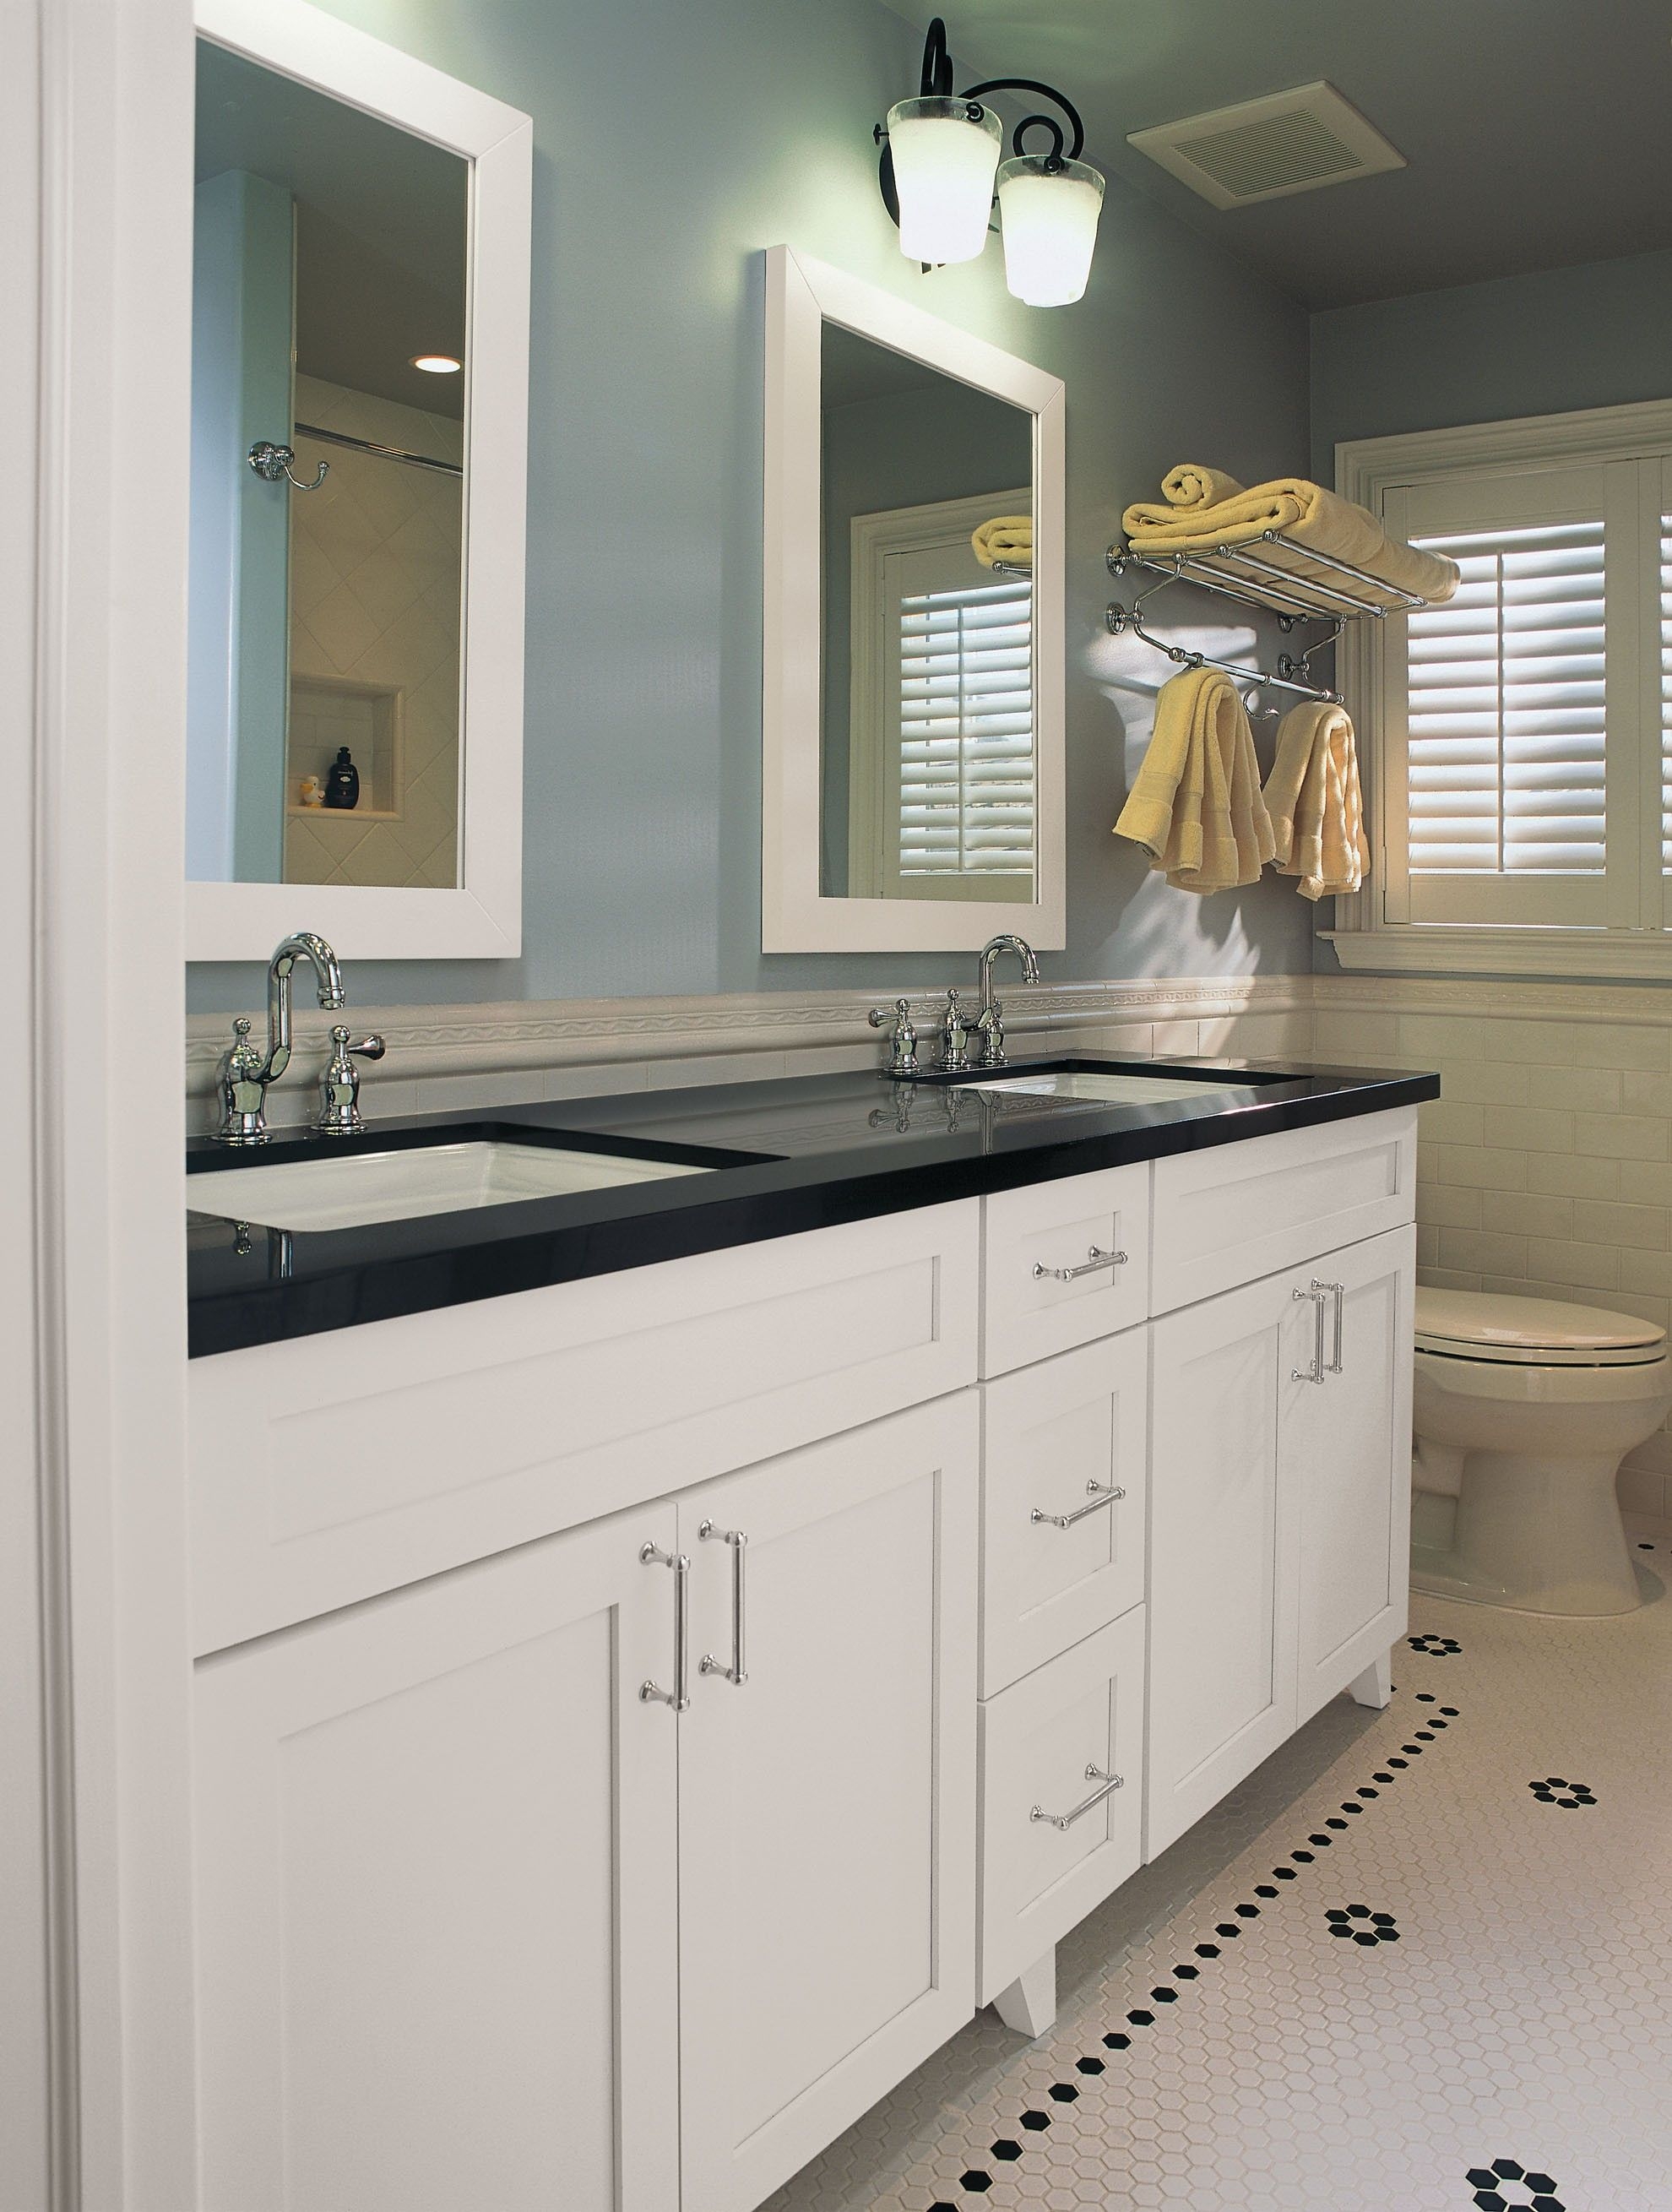 Beautiful Appealing Bathroom Light Brushed Nickel And Black Bathroom Countertop With  Yellow Towels